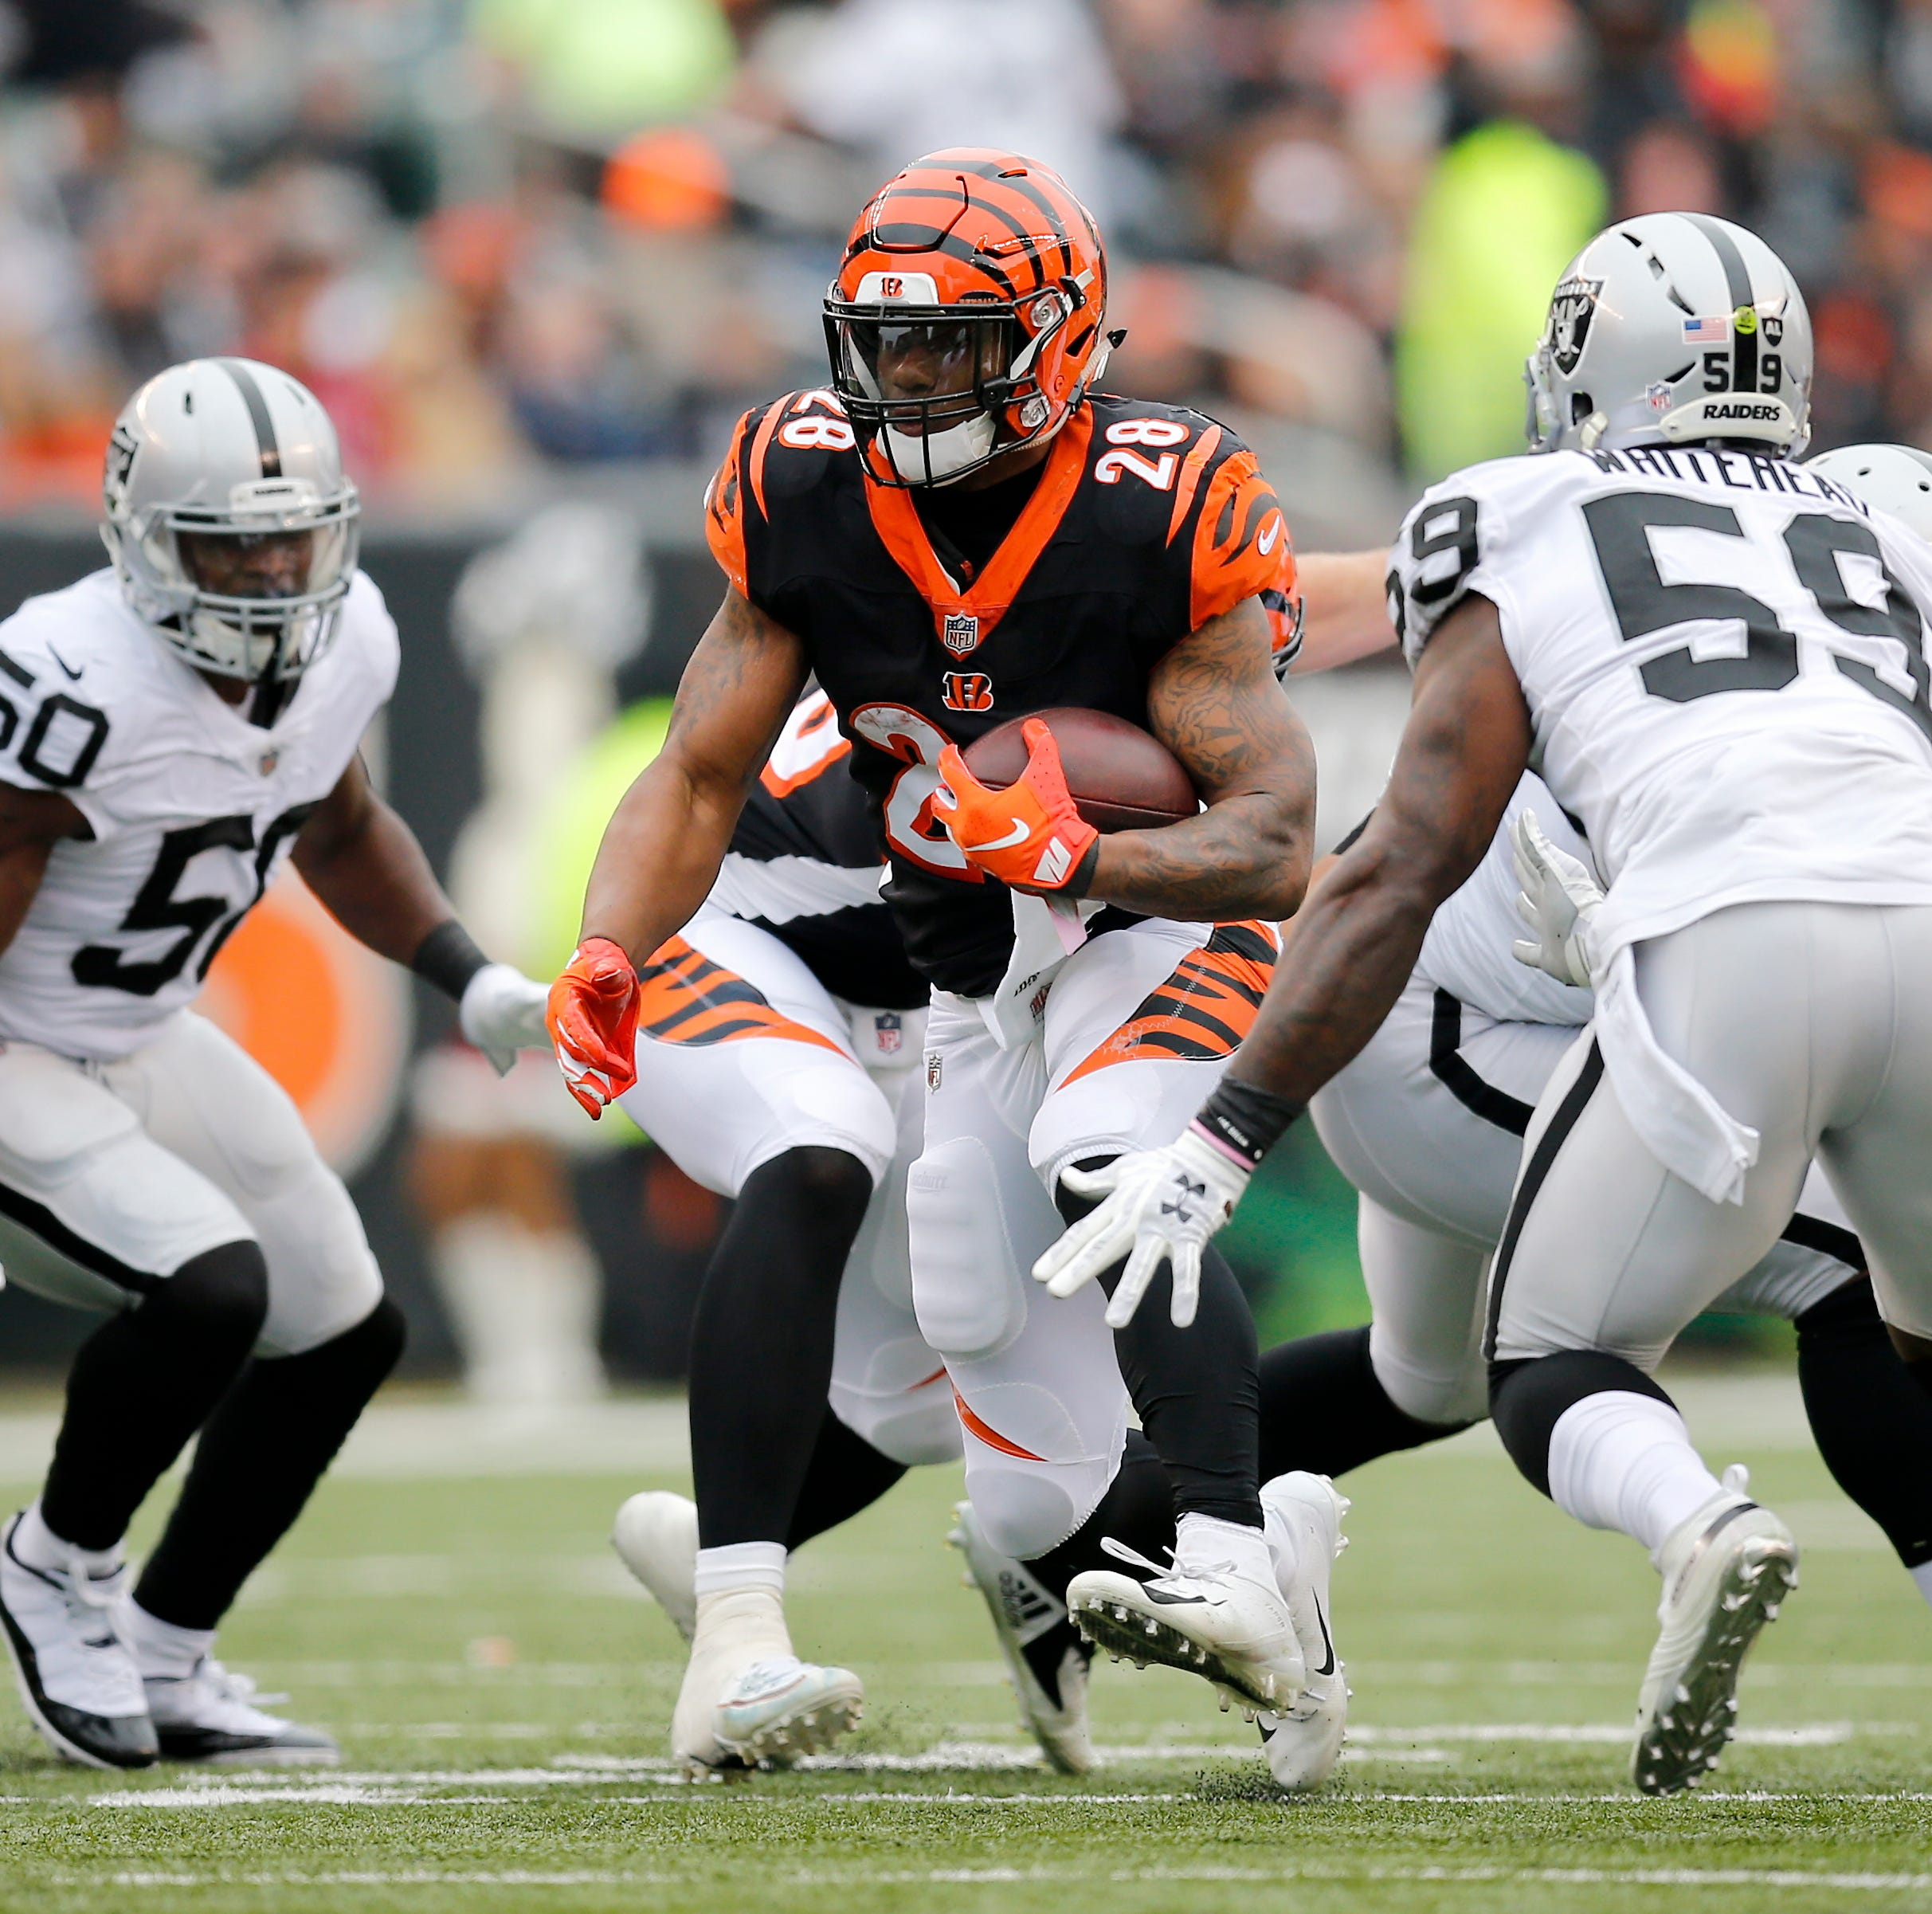 Live updates: Cincinnati Bengals lead Oakland Raiders in fourth quarter